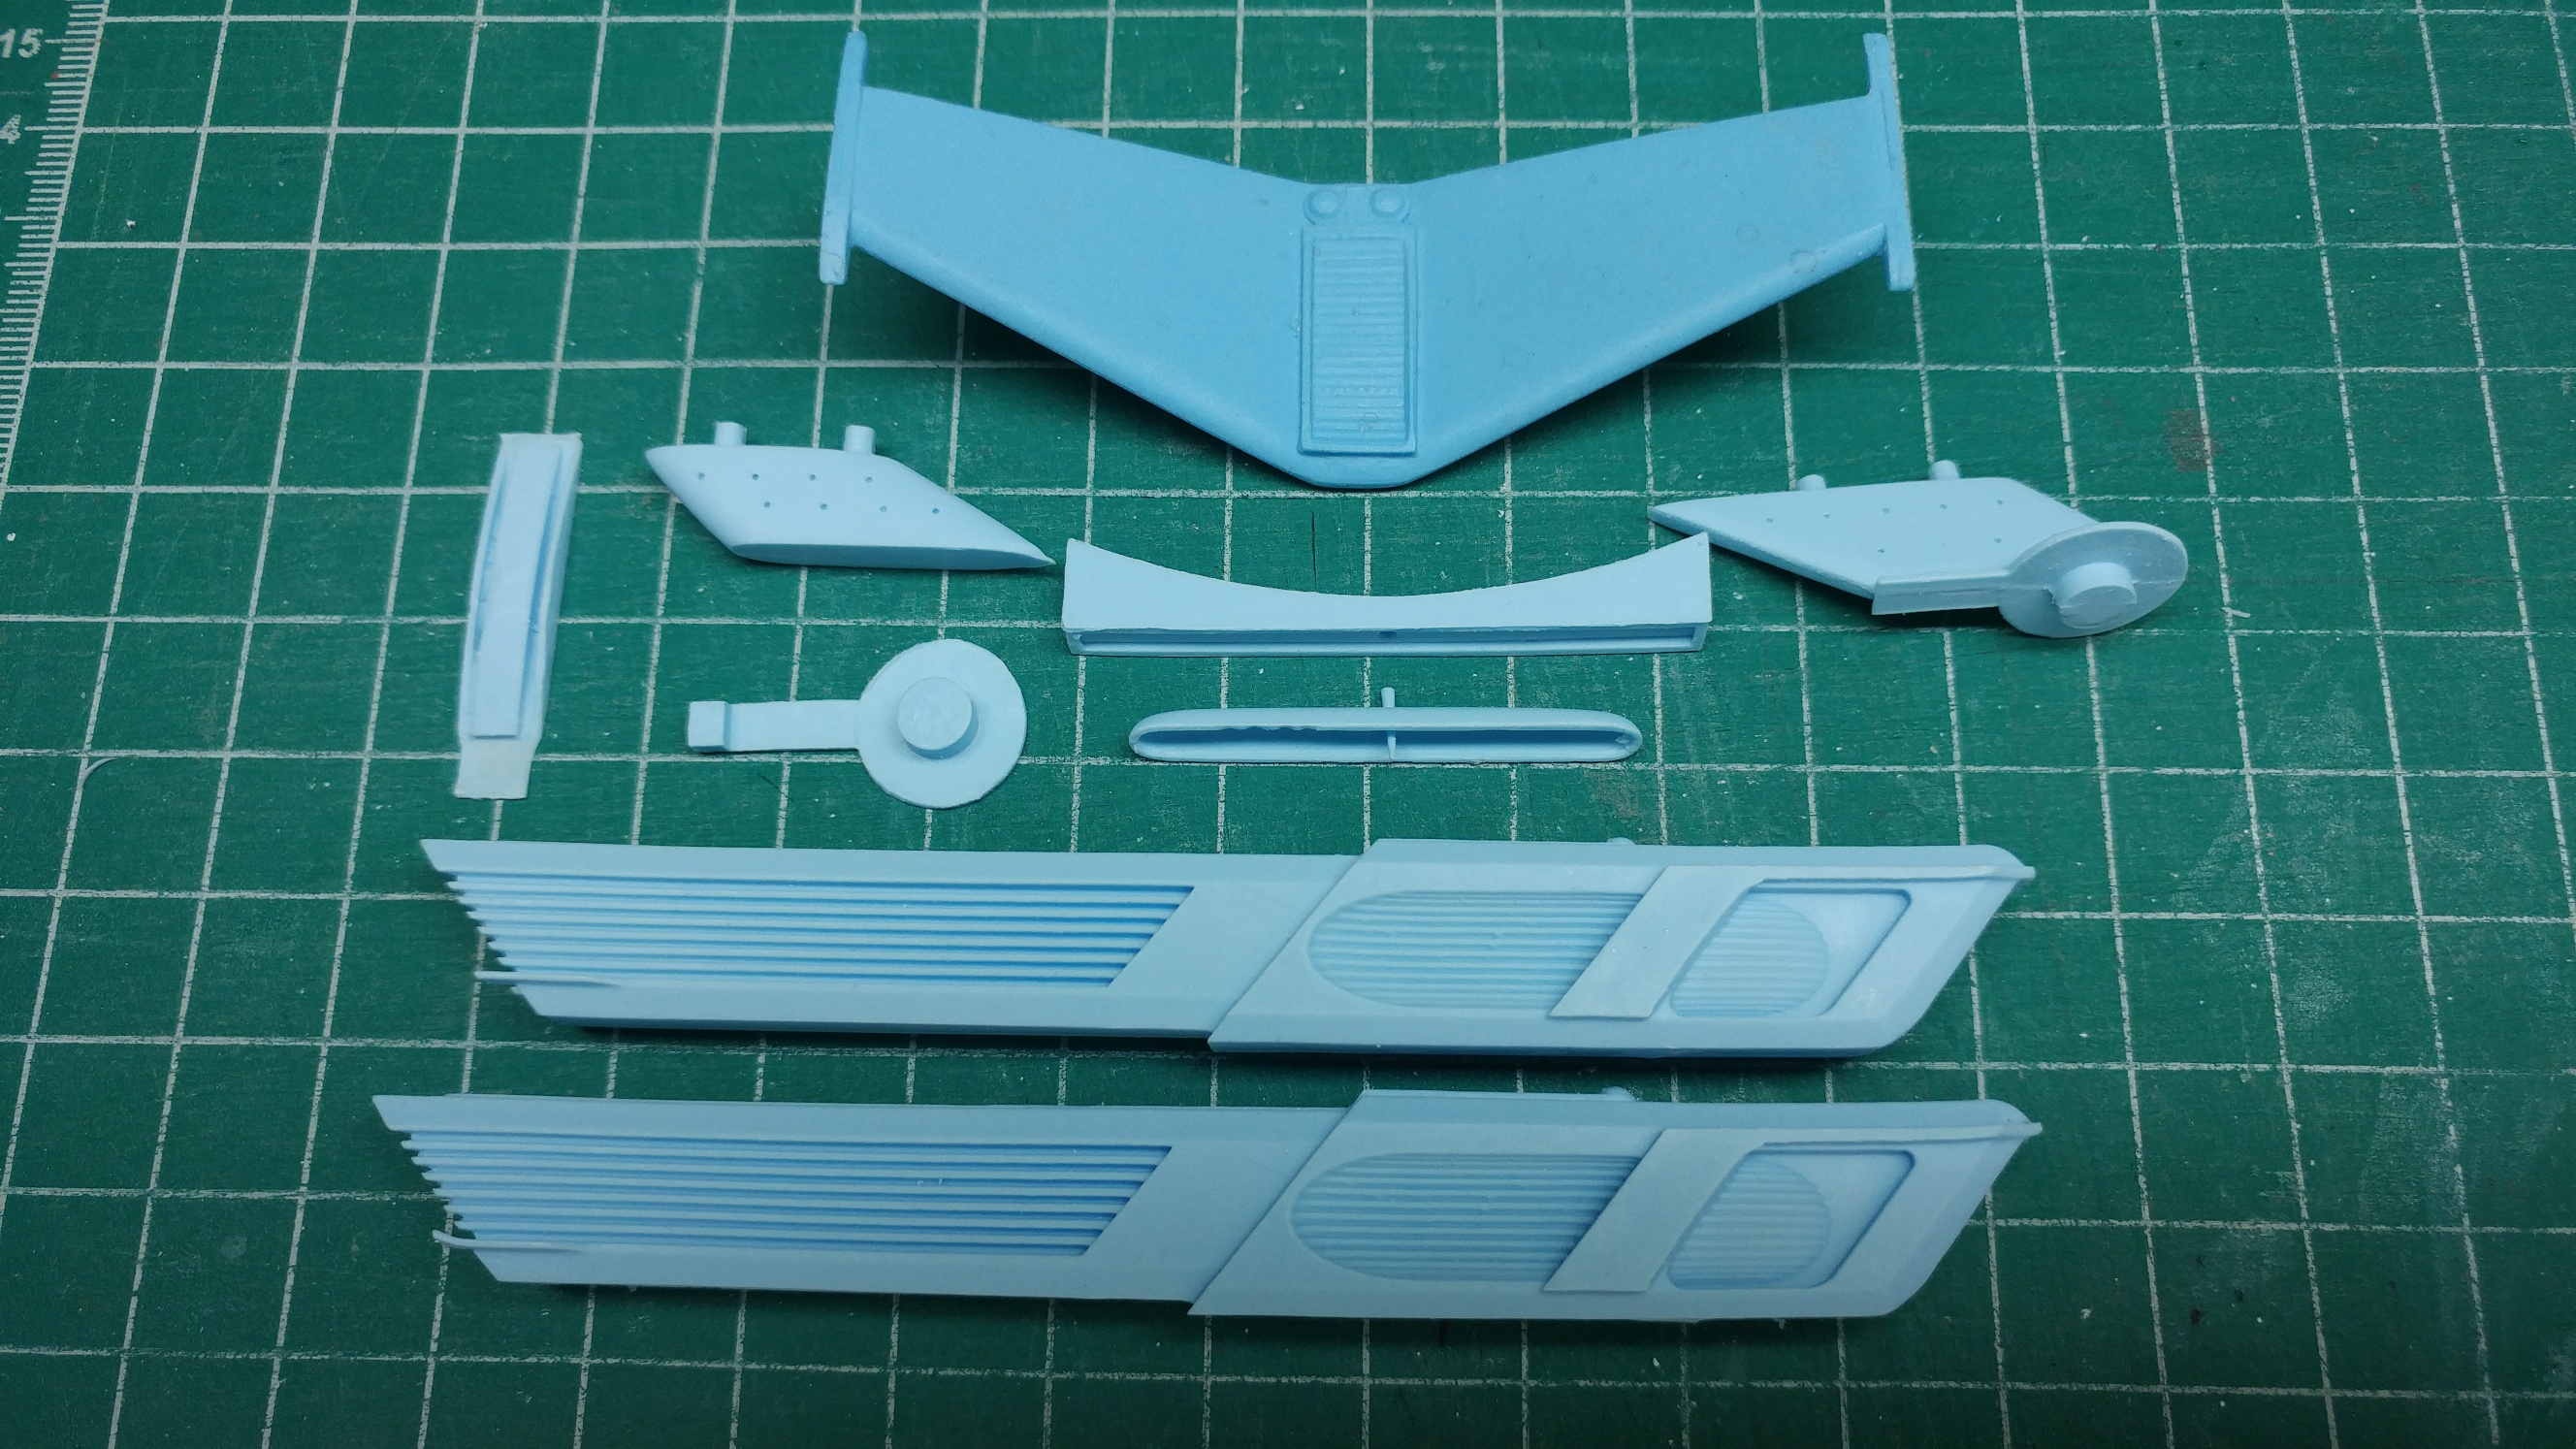 Saucer Mounted Nacelle Conversion Kit Basilisk Version